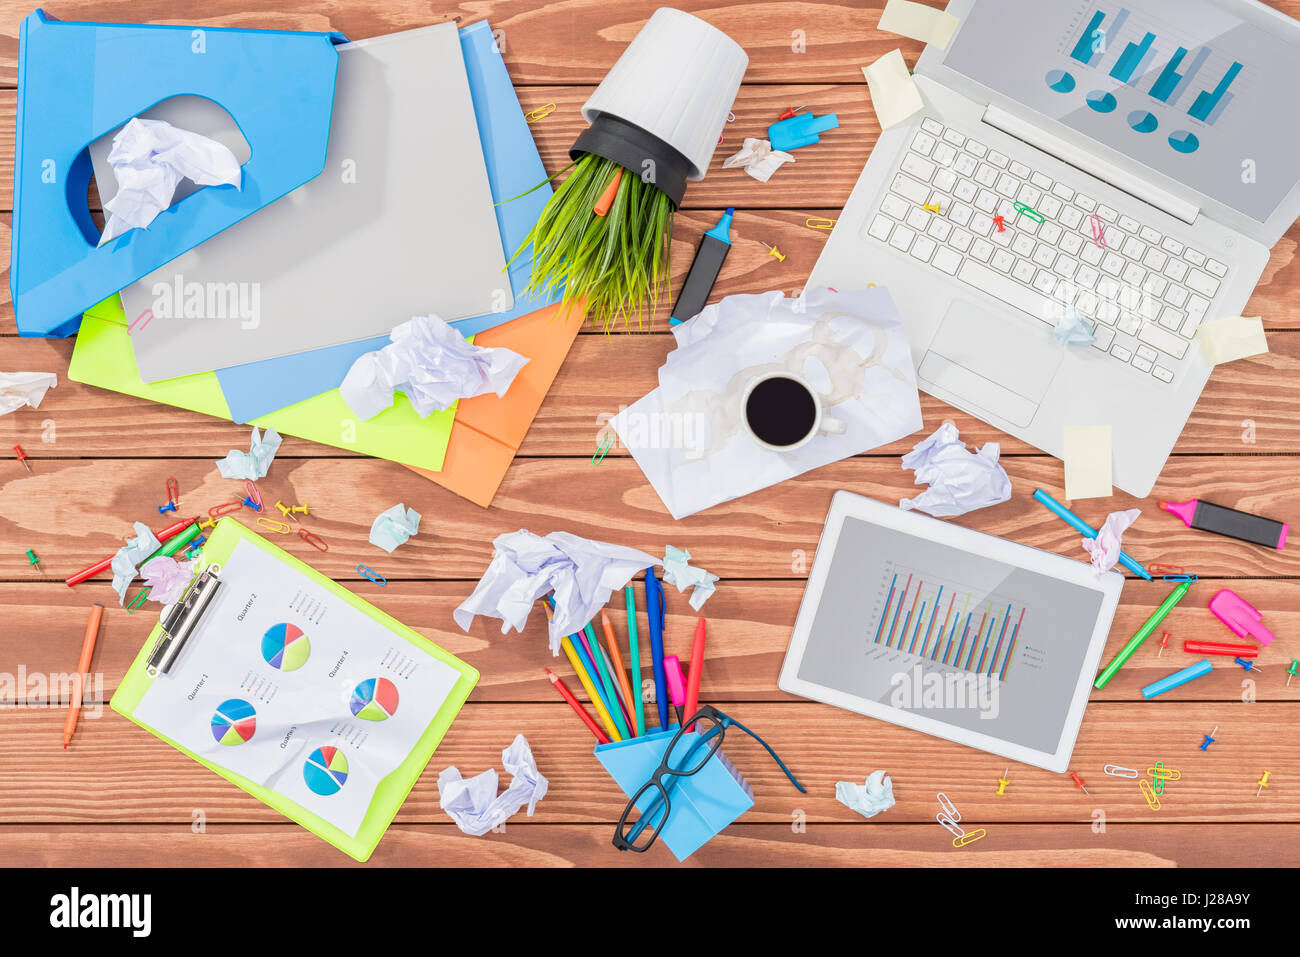 Messy office table - Stock Image